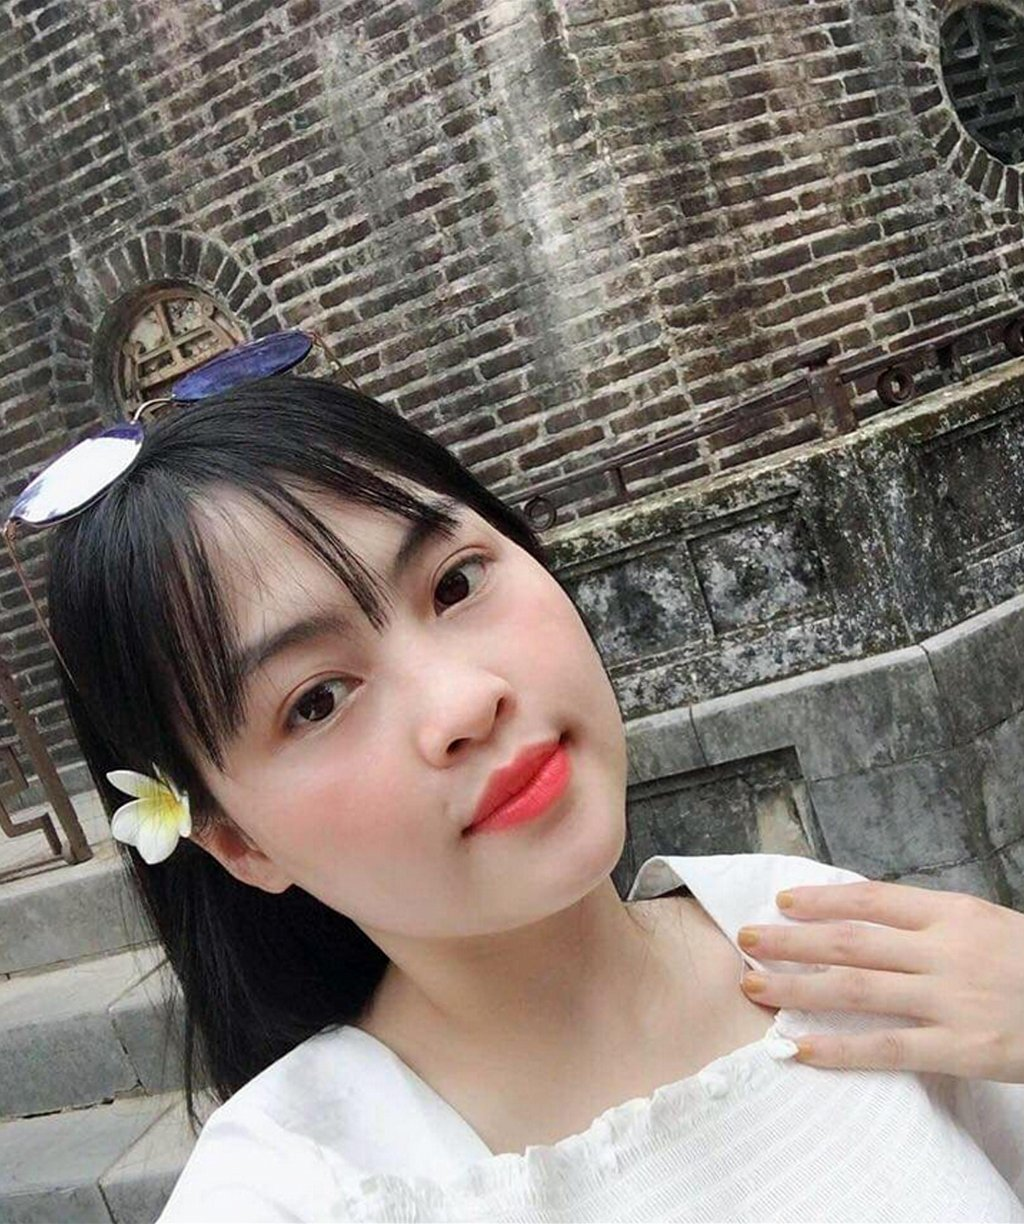 Pham Thi Tra My, the young Vietnamese woman who suffocated to death alongside 38 other victims in a lorry that arrived on Tuesday in southern England | Photo: posted by Noa Nghiem, Vietnamese activist for human rights, on a Twitter profile on October 25, 2019